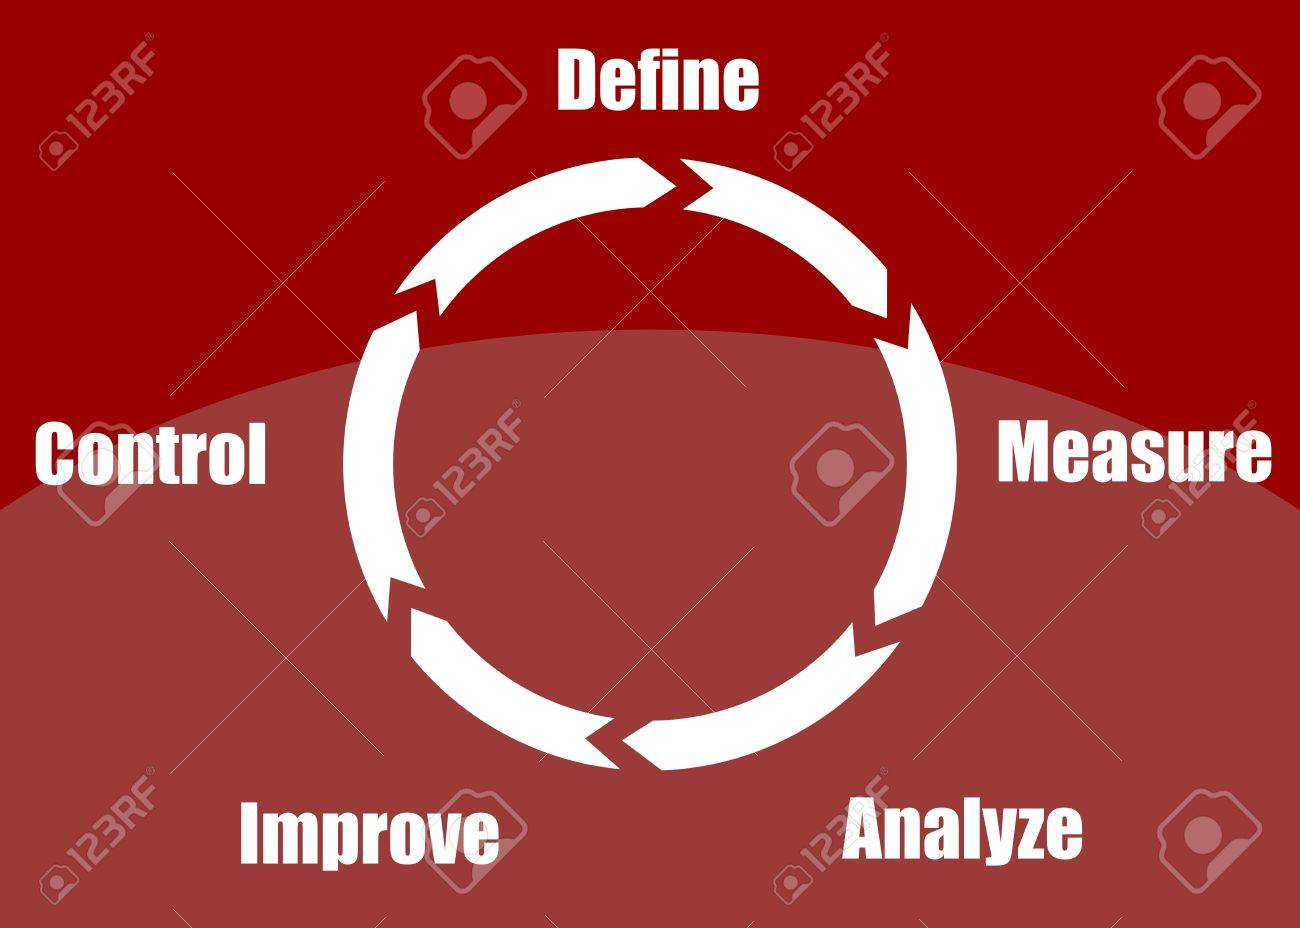 Concept of continuous improvement process or cycle (define, measure, analyze, improve, control) presented in a poster Stock Vector - 19217723